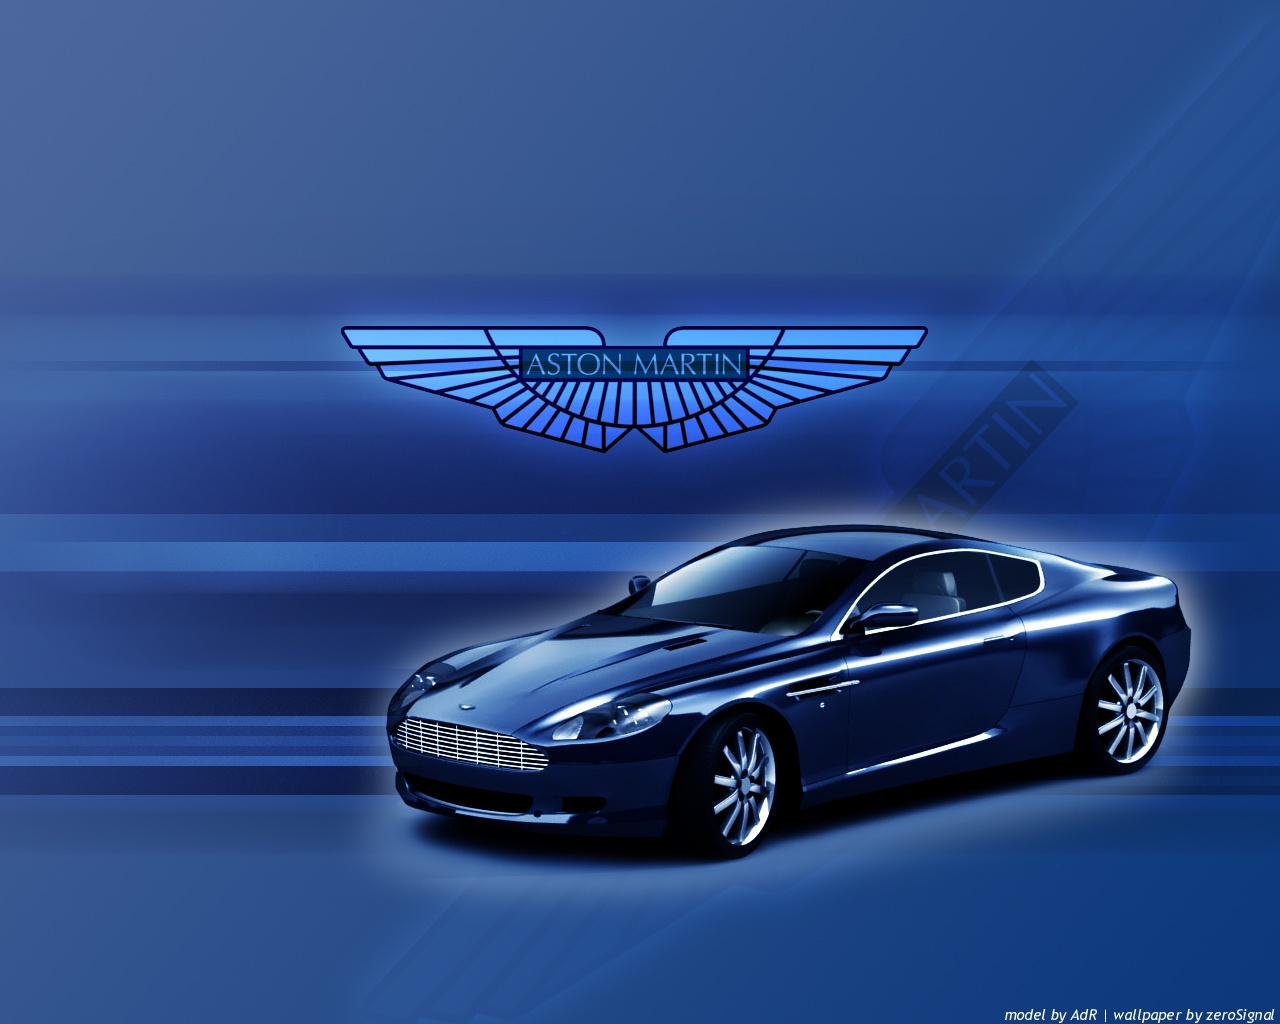 Aston Martin Free Wallpaper For Android